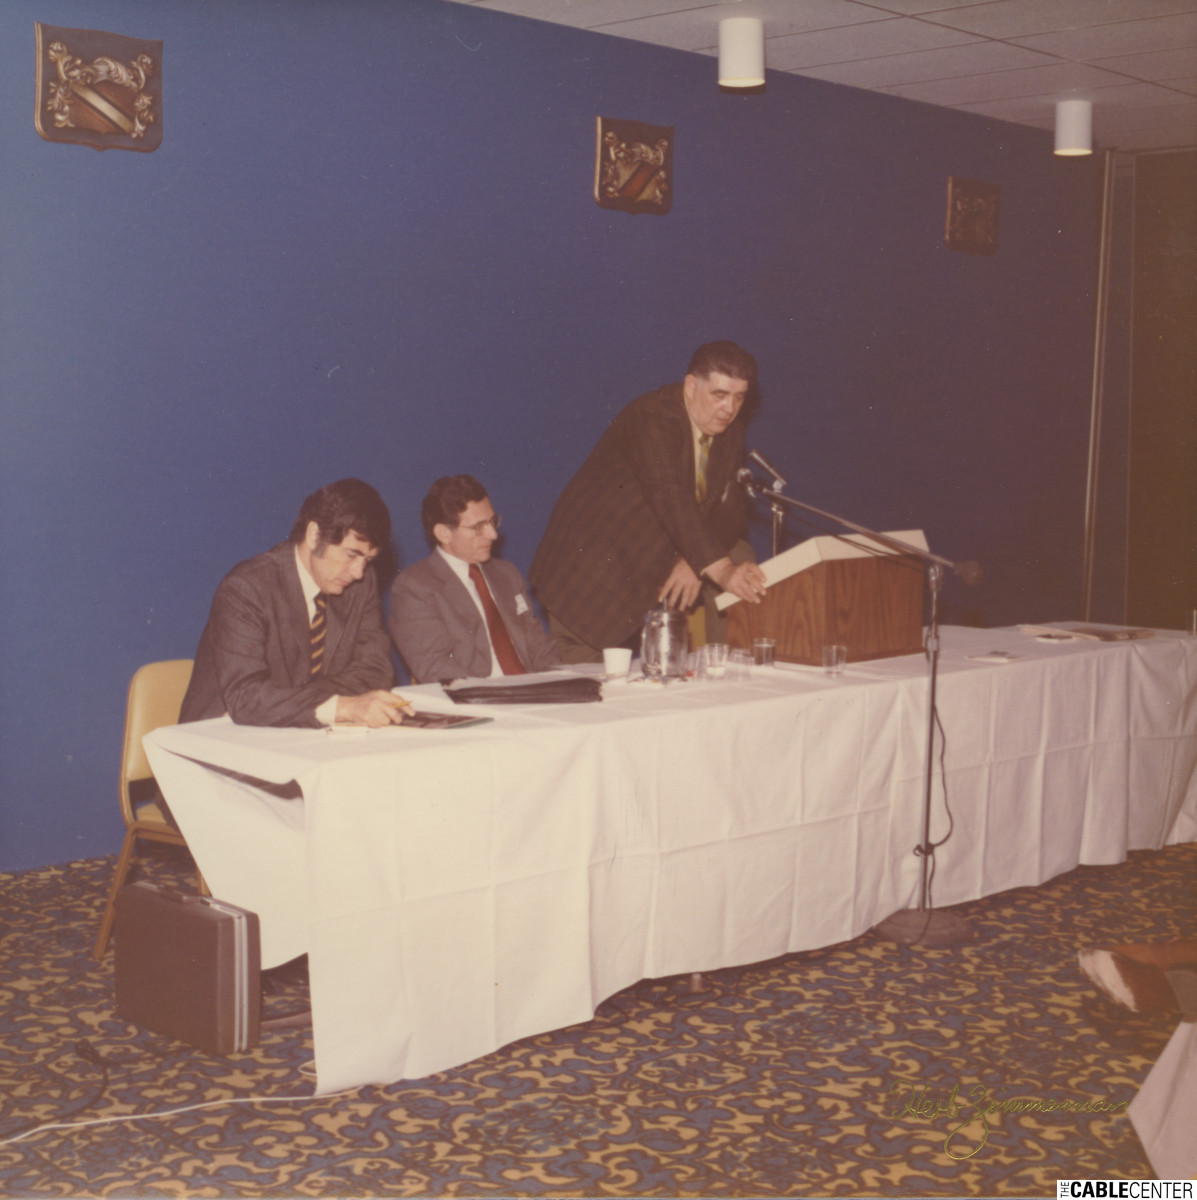 William Kenny at podium, 1973 NECTA convention